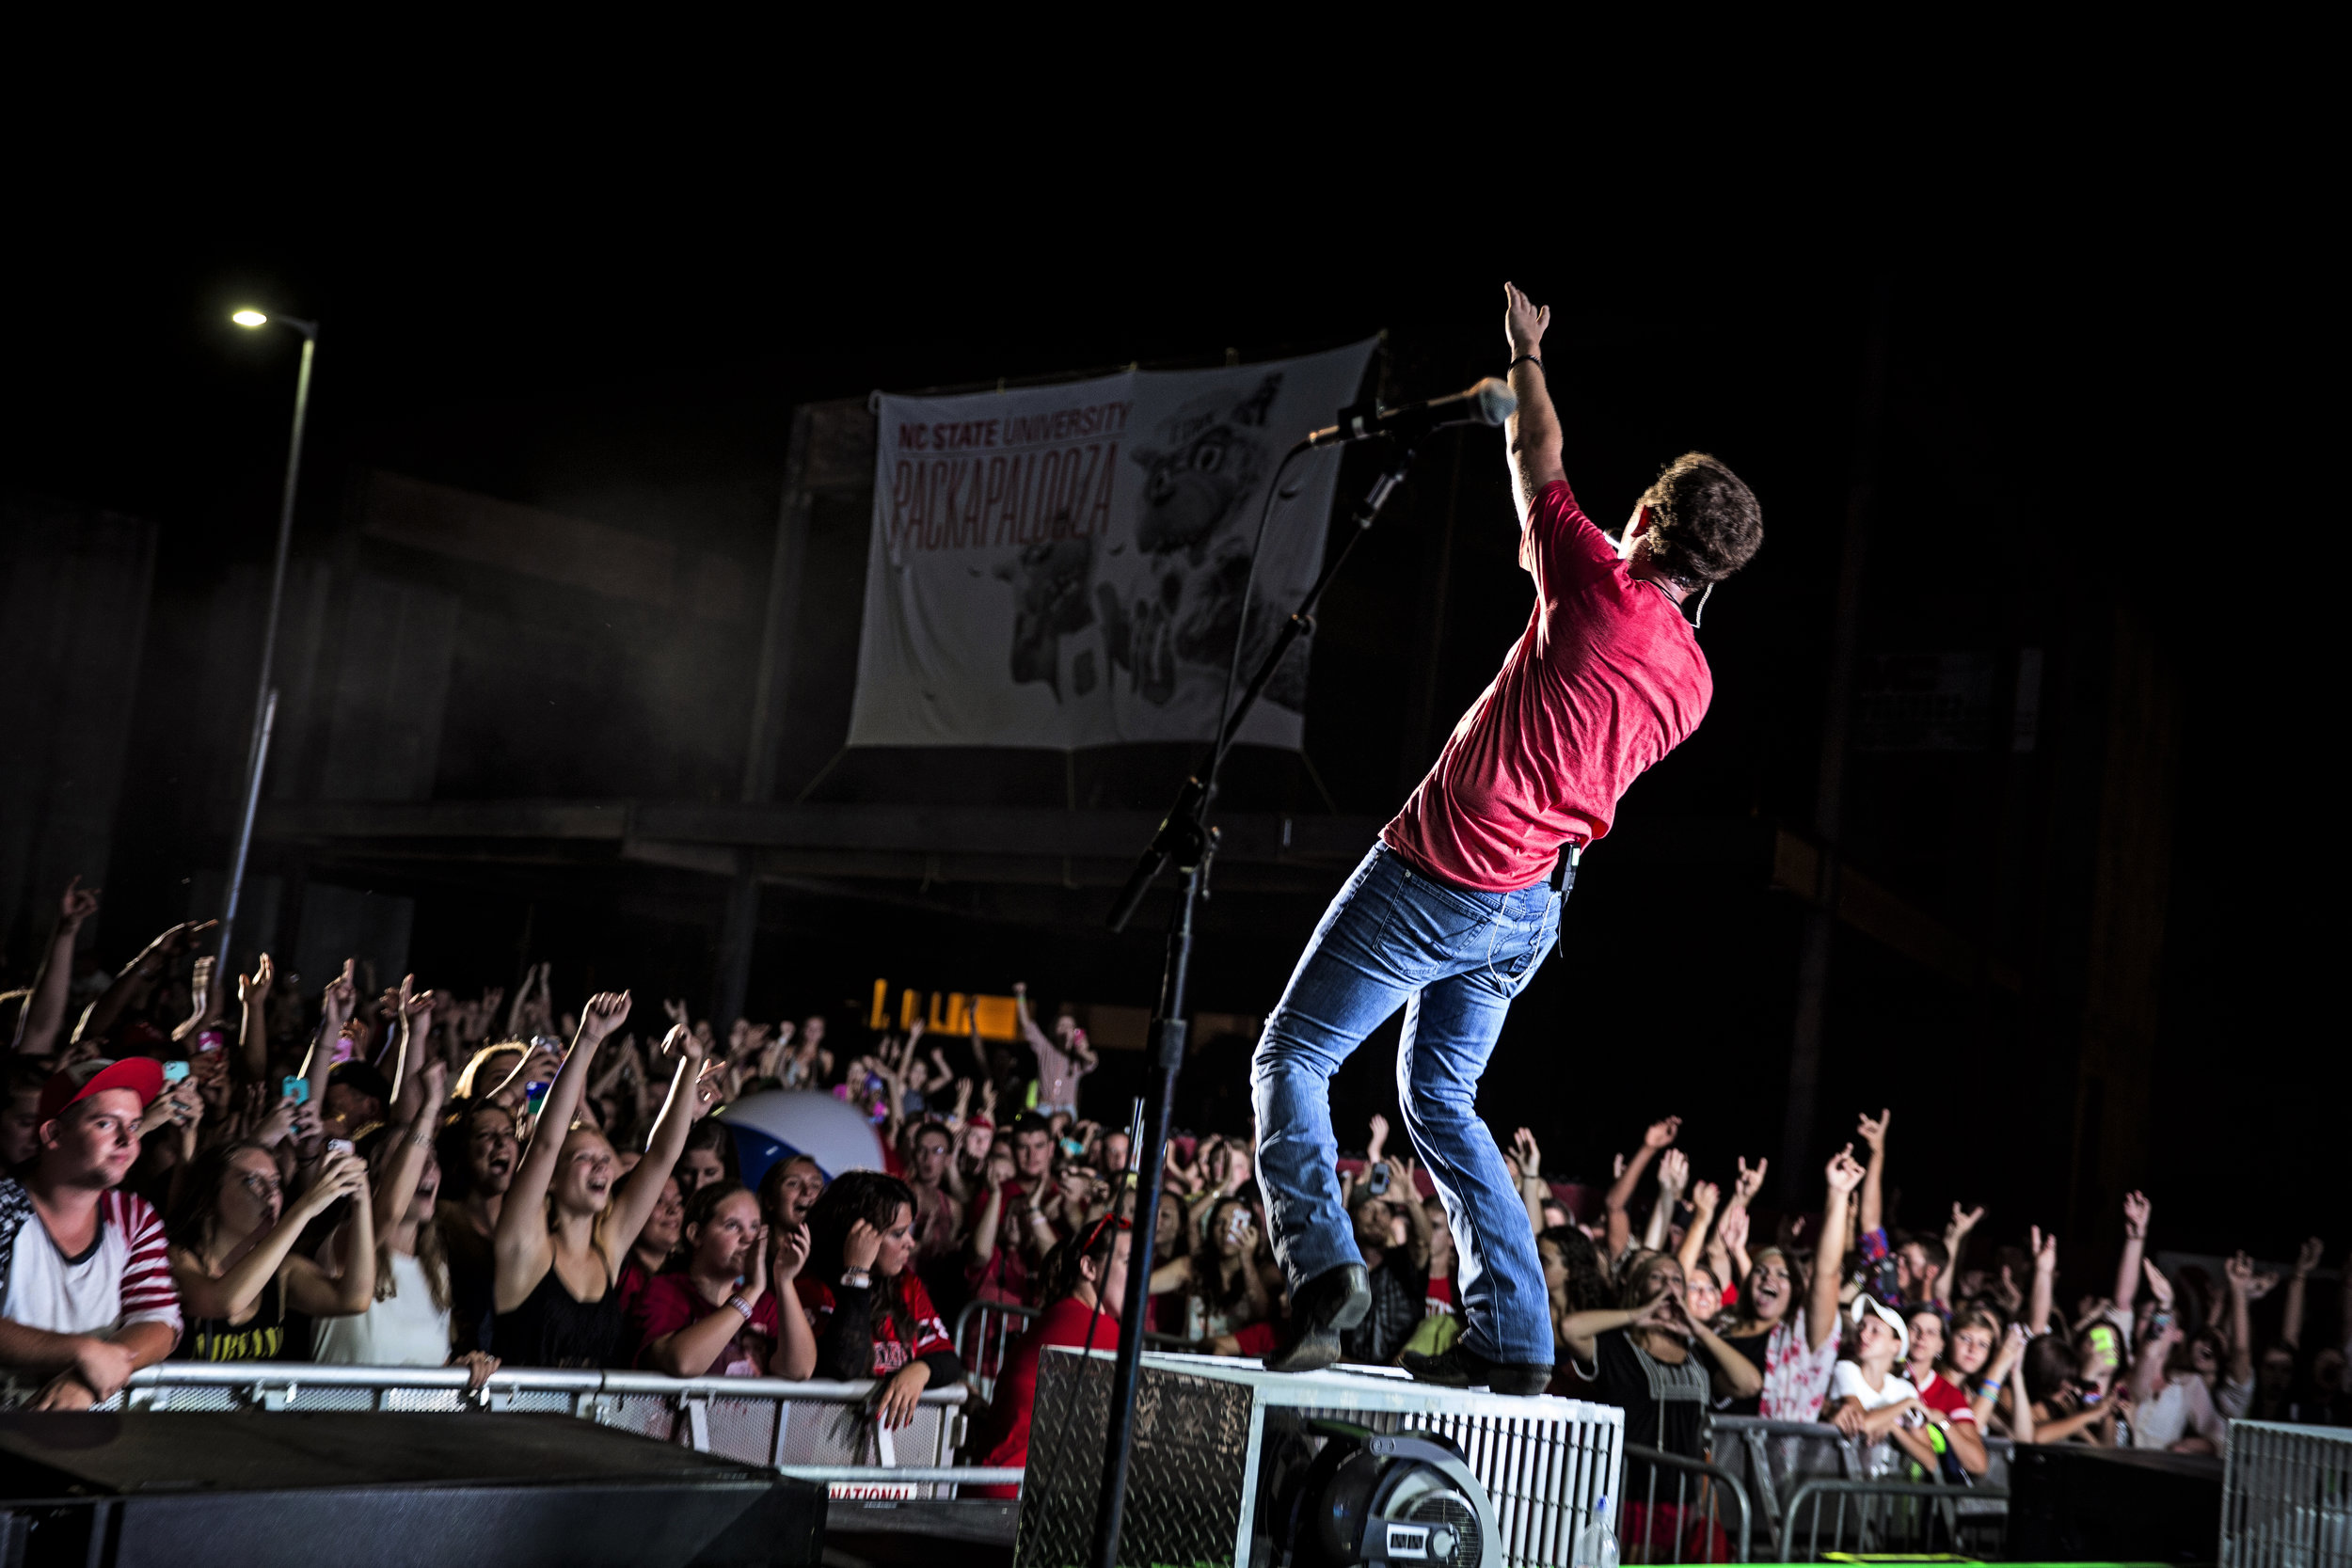 Scotty performs at N.C. State's Pack-a-Palooza | Photo by Eric Adkins